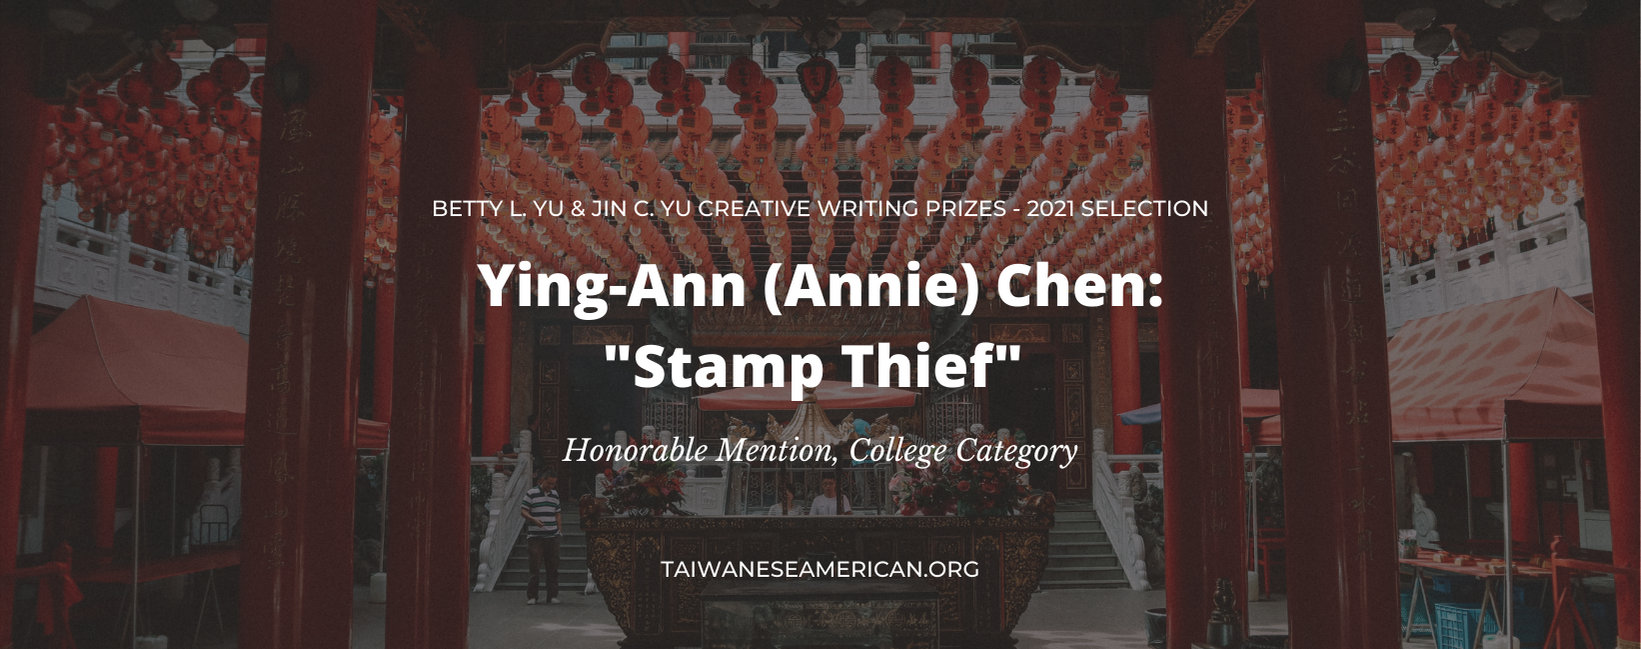 Hu and annie chen latest news